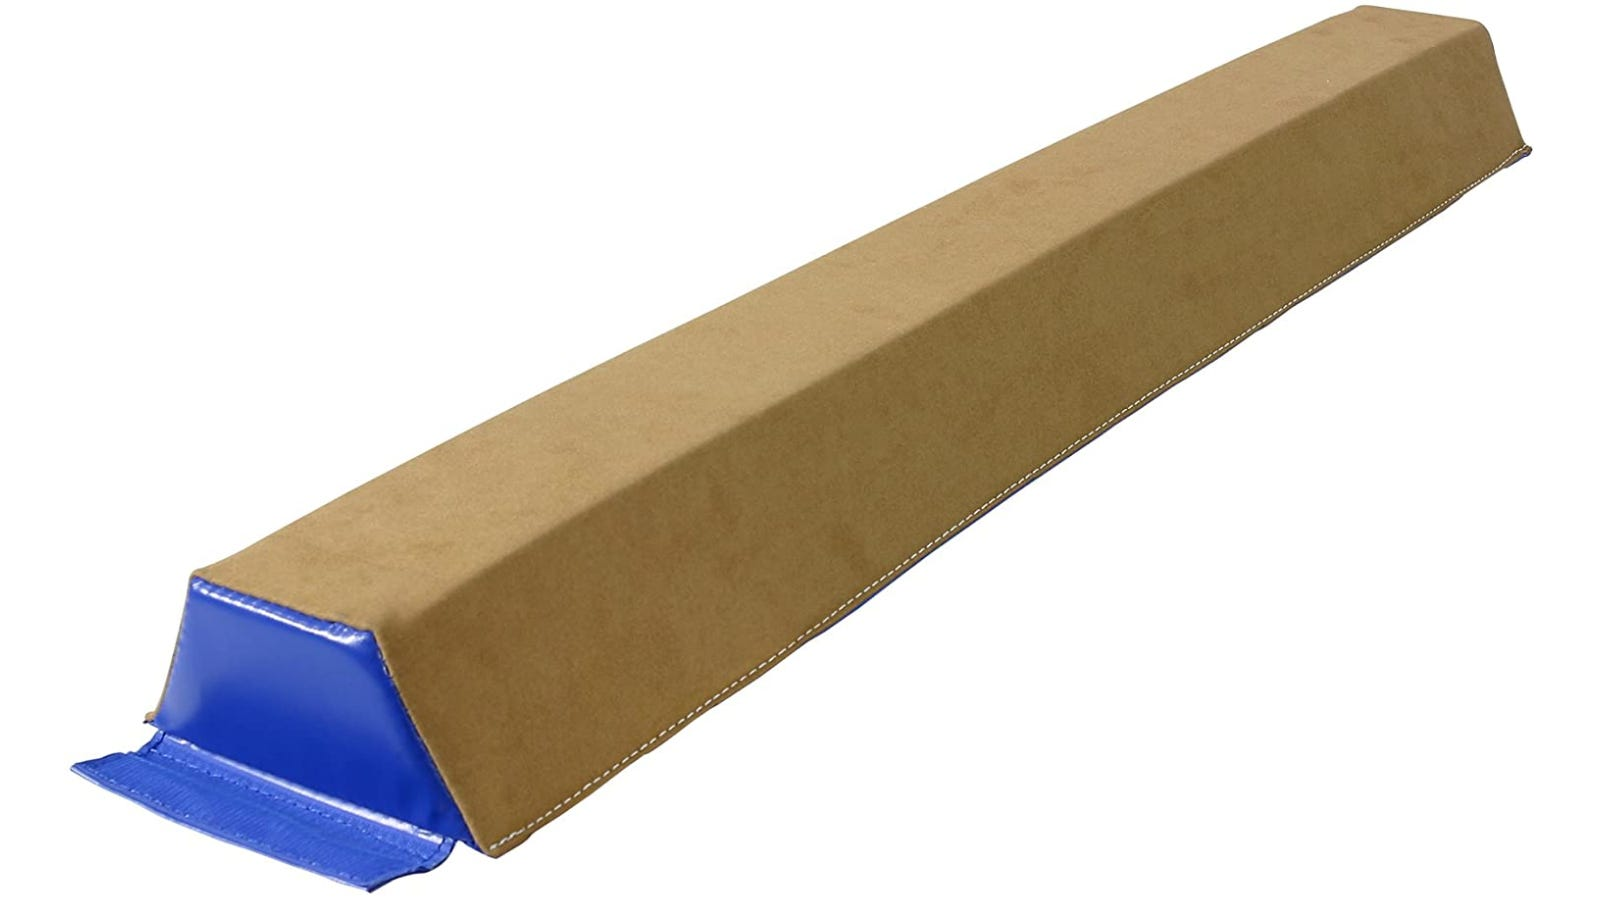 A floor beam with a brown suede cover and blue sides.